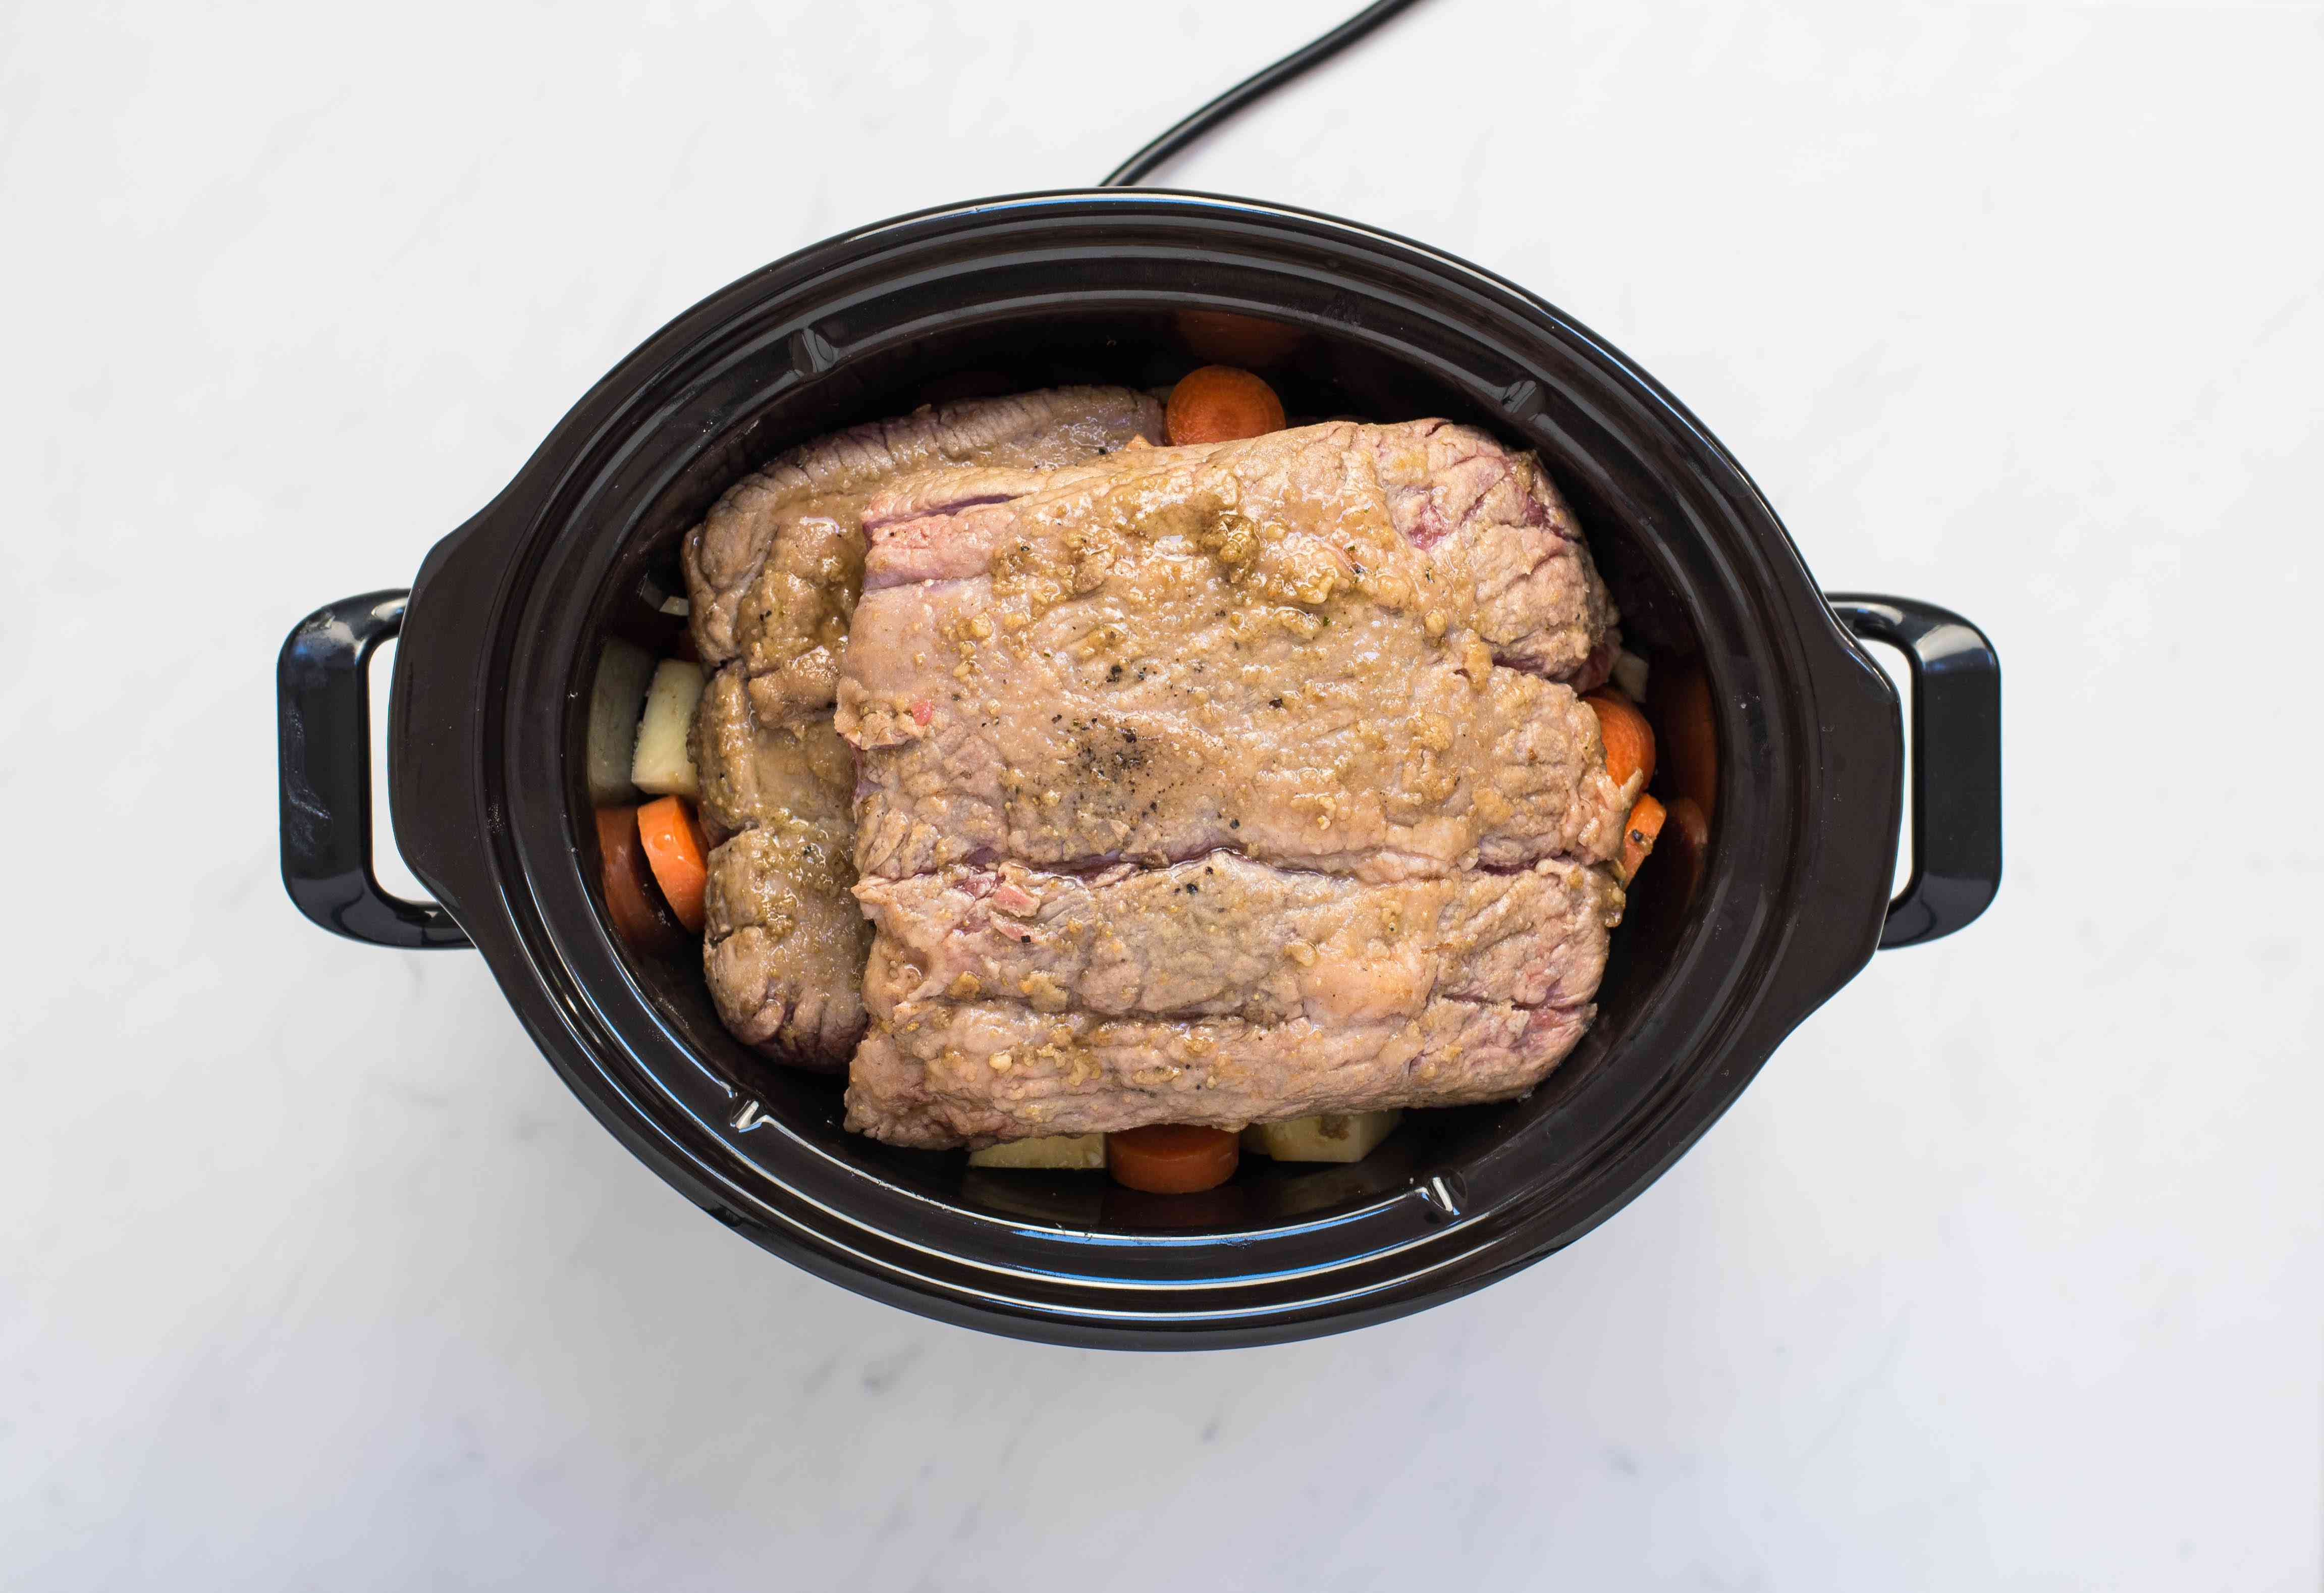 Pour juices on top of meat and other ingredients in slow cooker